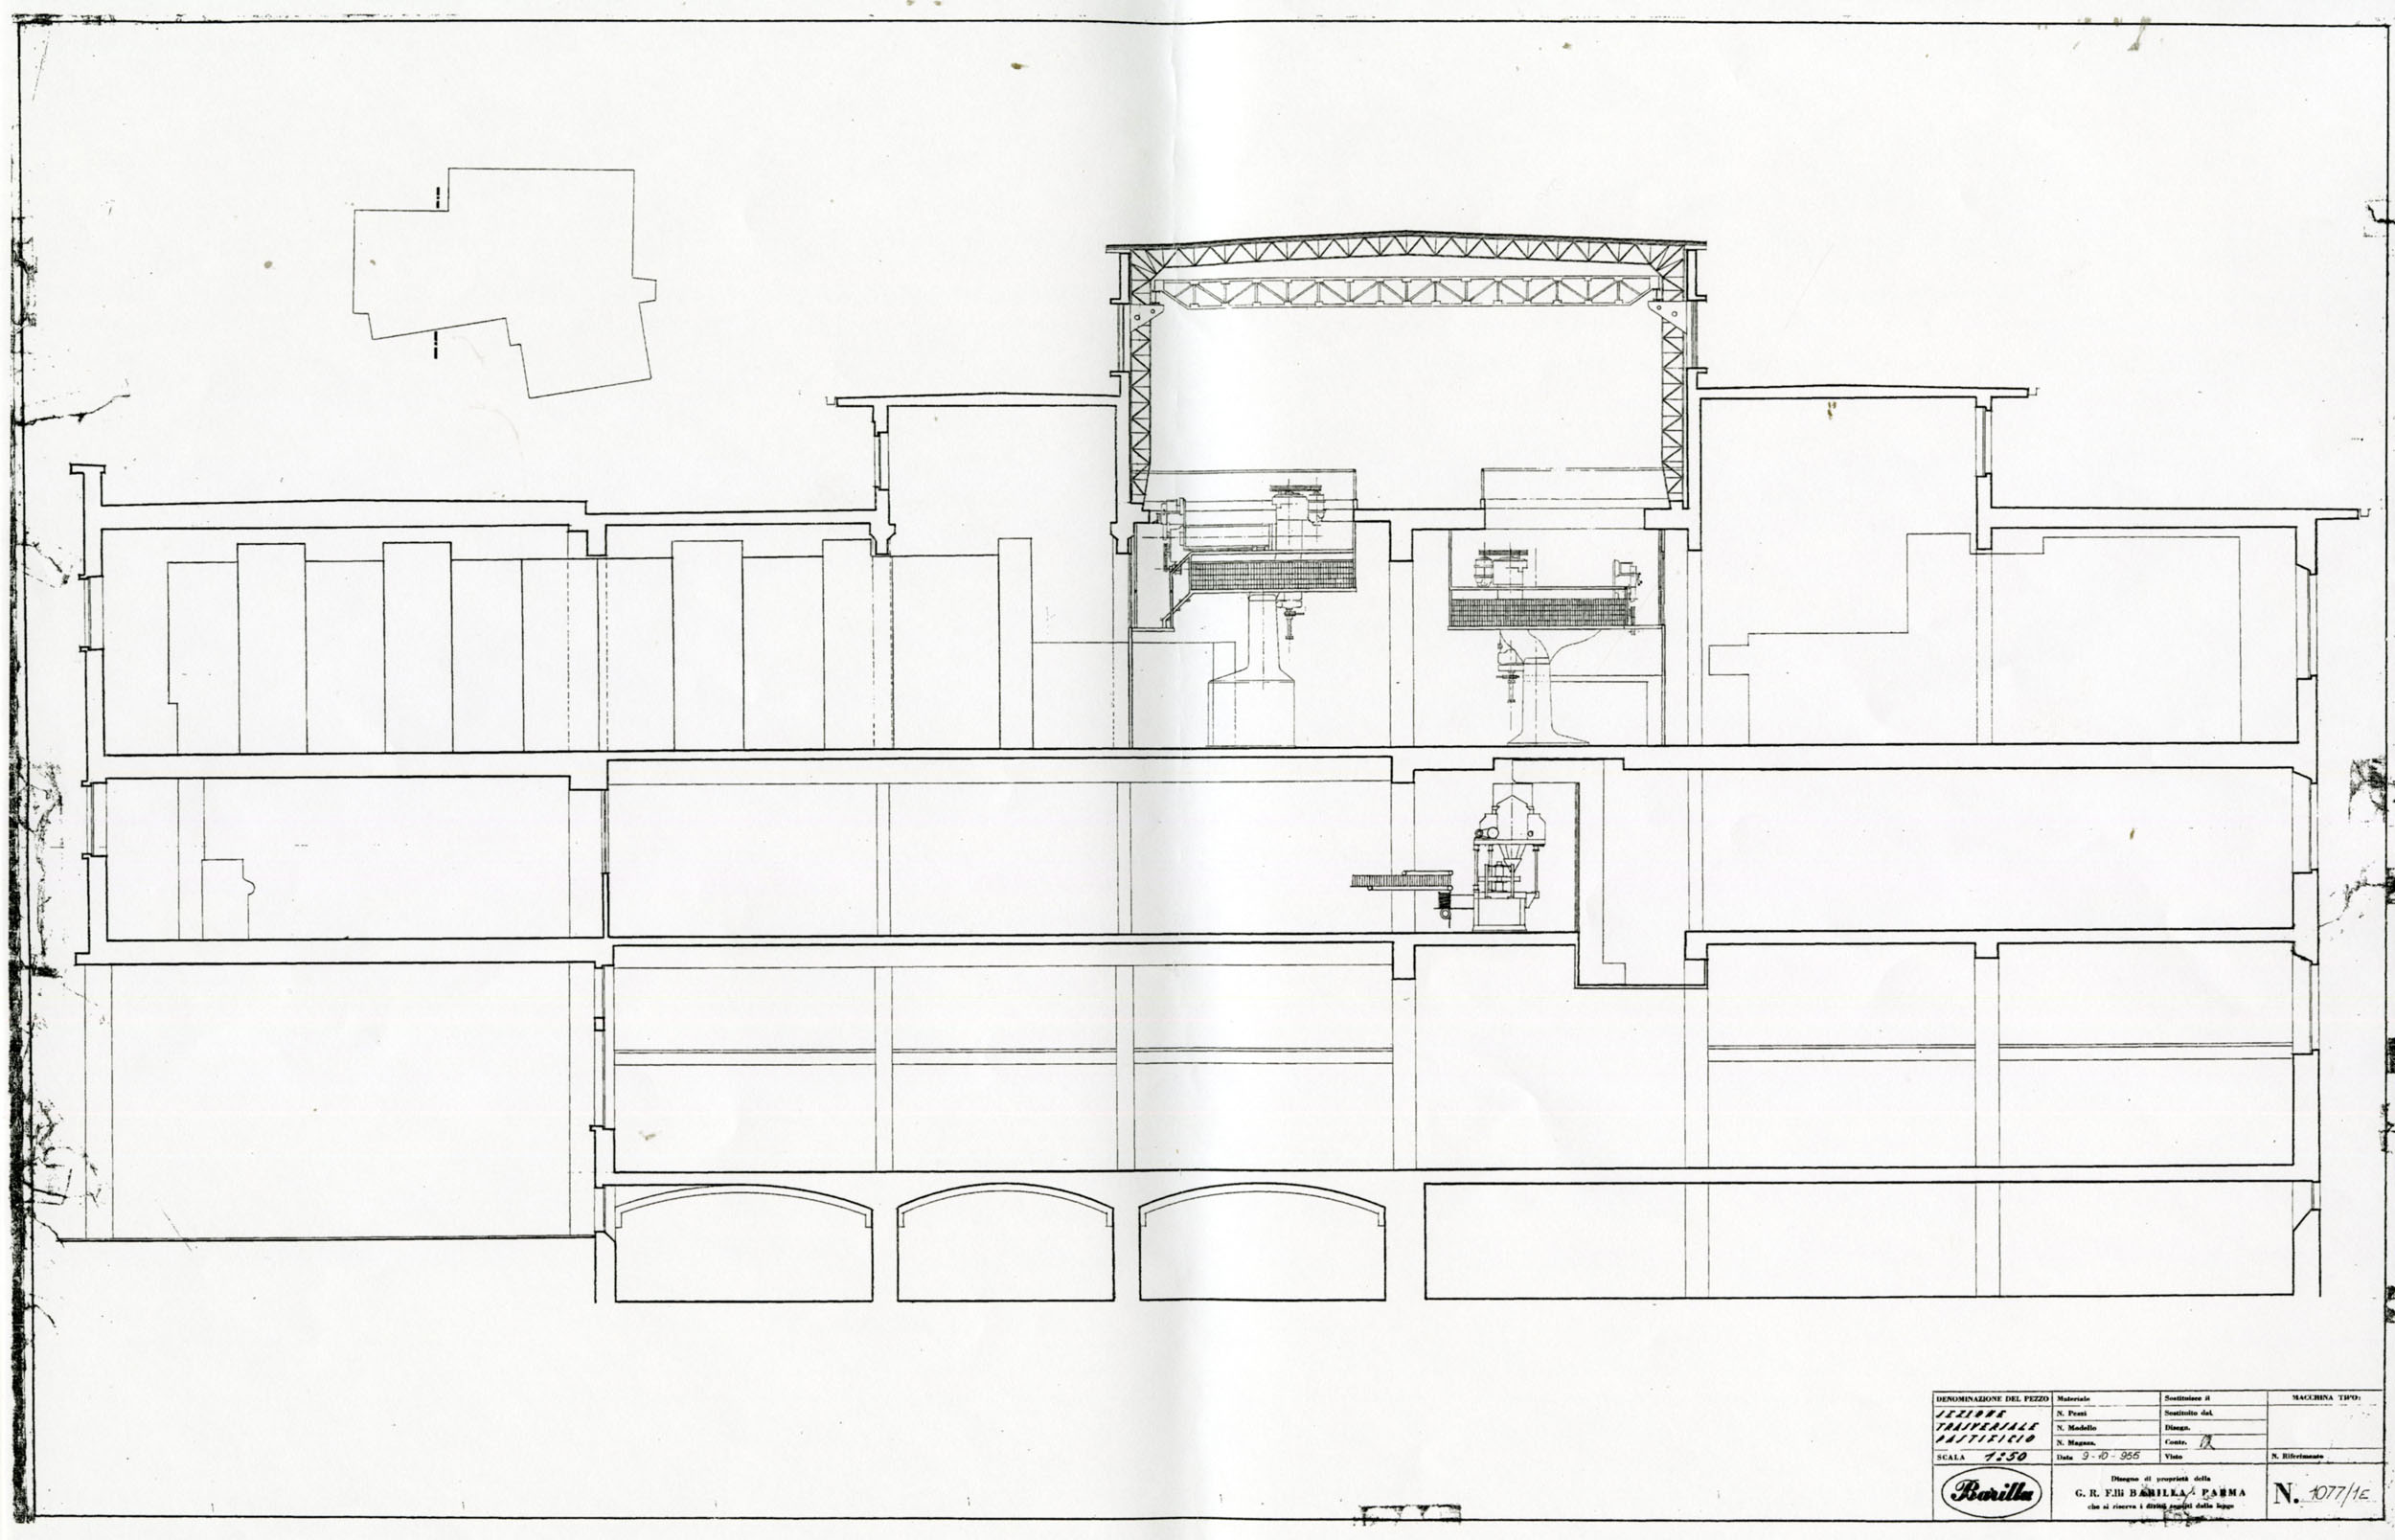 Barilla Technical Office, cross section of the plant with the design of the continuous presses on the second floor with the double height nave [ASB, O, Plants].